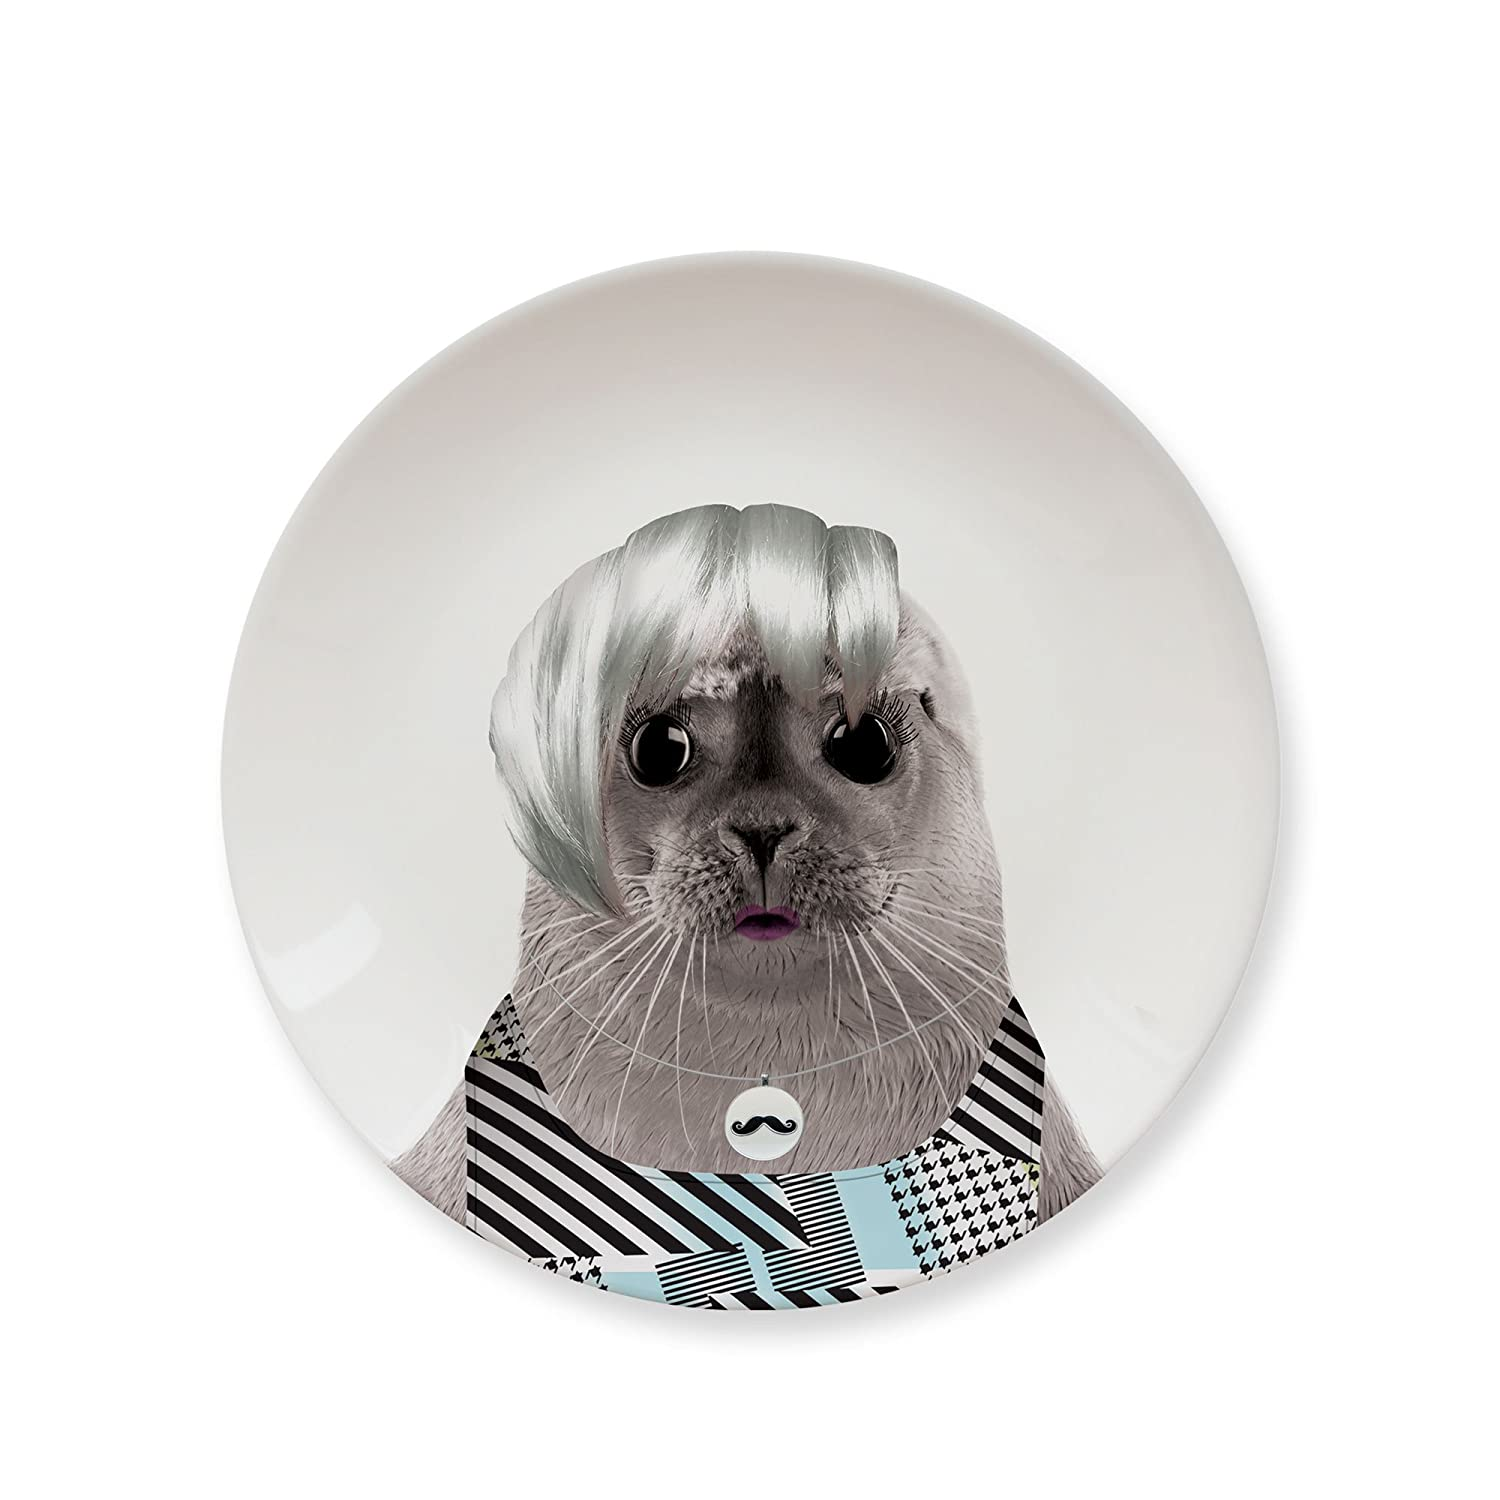 MUSTARD - Wild Dining Cat Dinner Plate I Funny Dinner Plate I 100% Ceramic I 9-inch Plate I Ceramic Dinner Plate I Special Plate I Funny Plate with Goofy Pet Print I Gift Idea for Students - Cool Cat 5055998804517